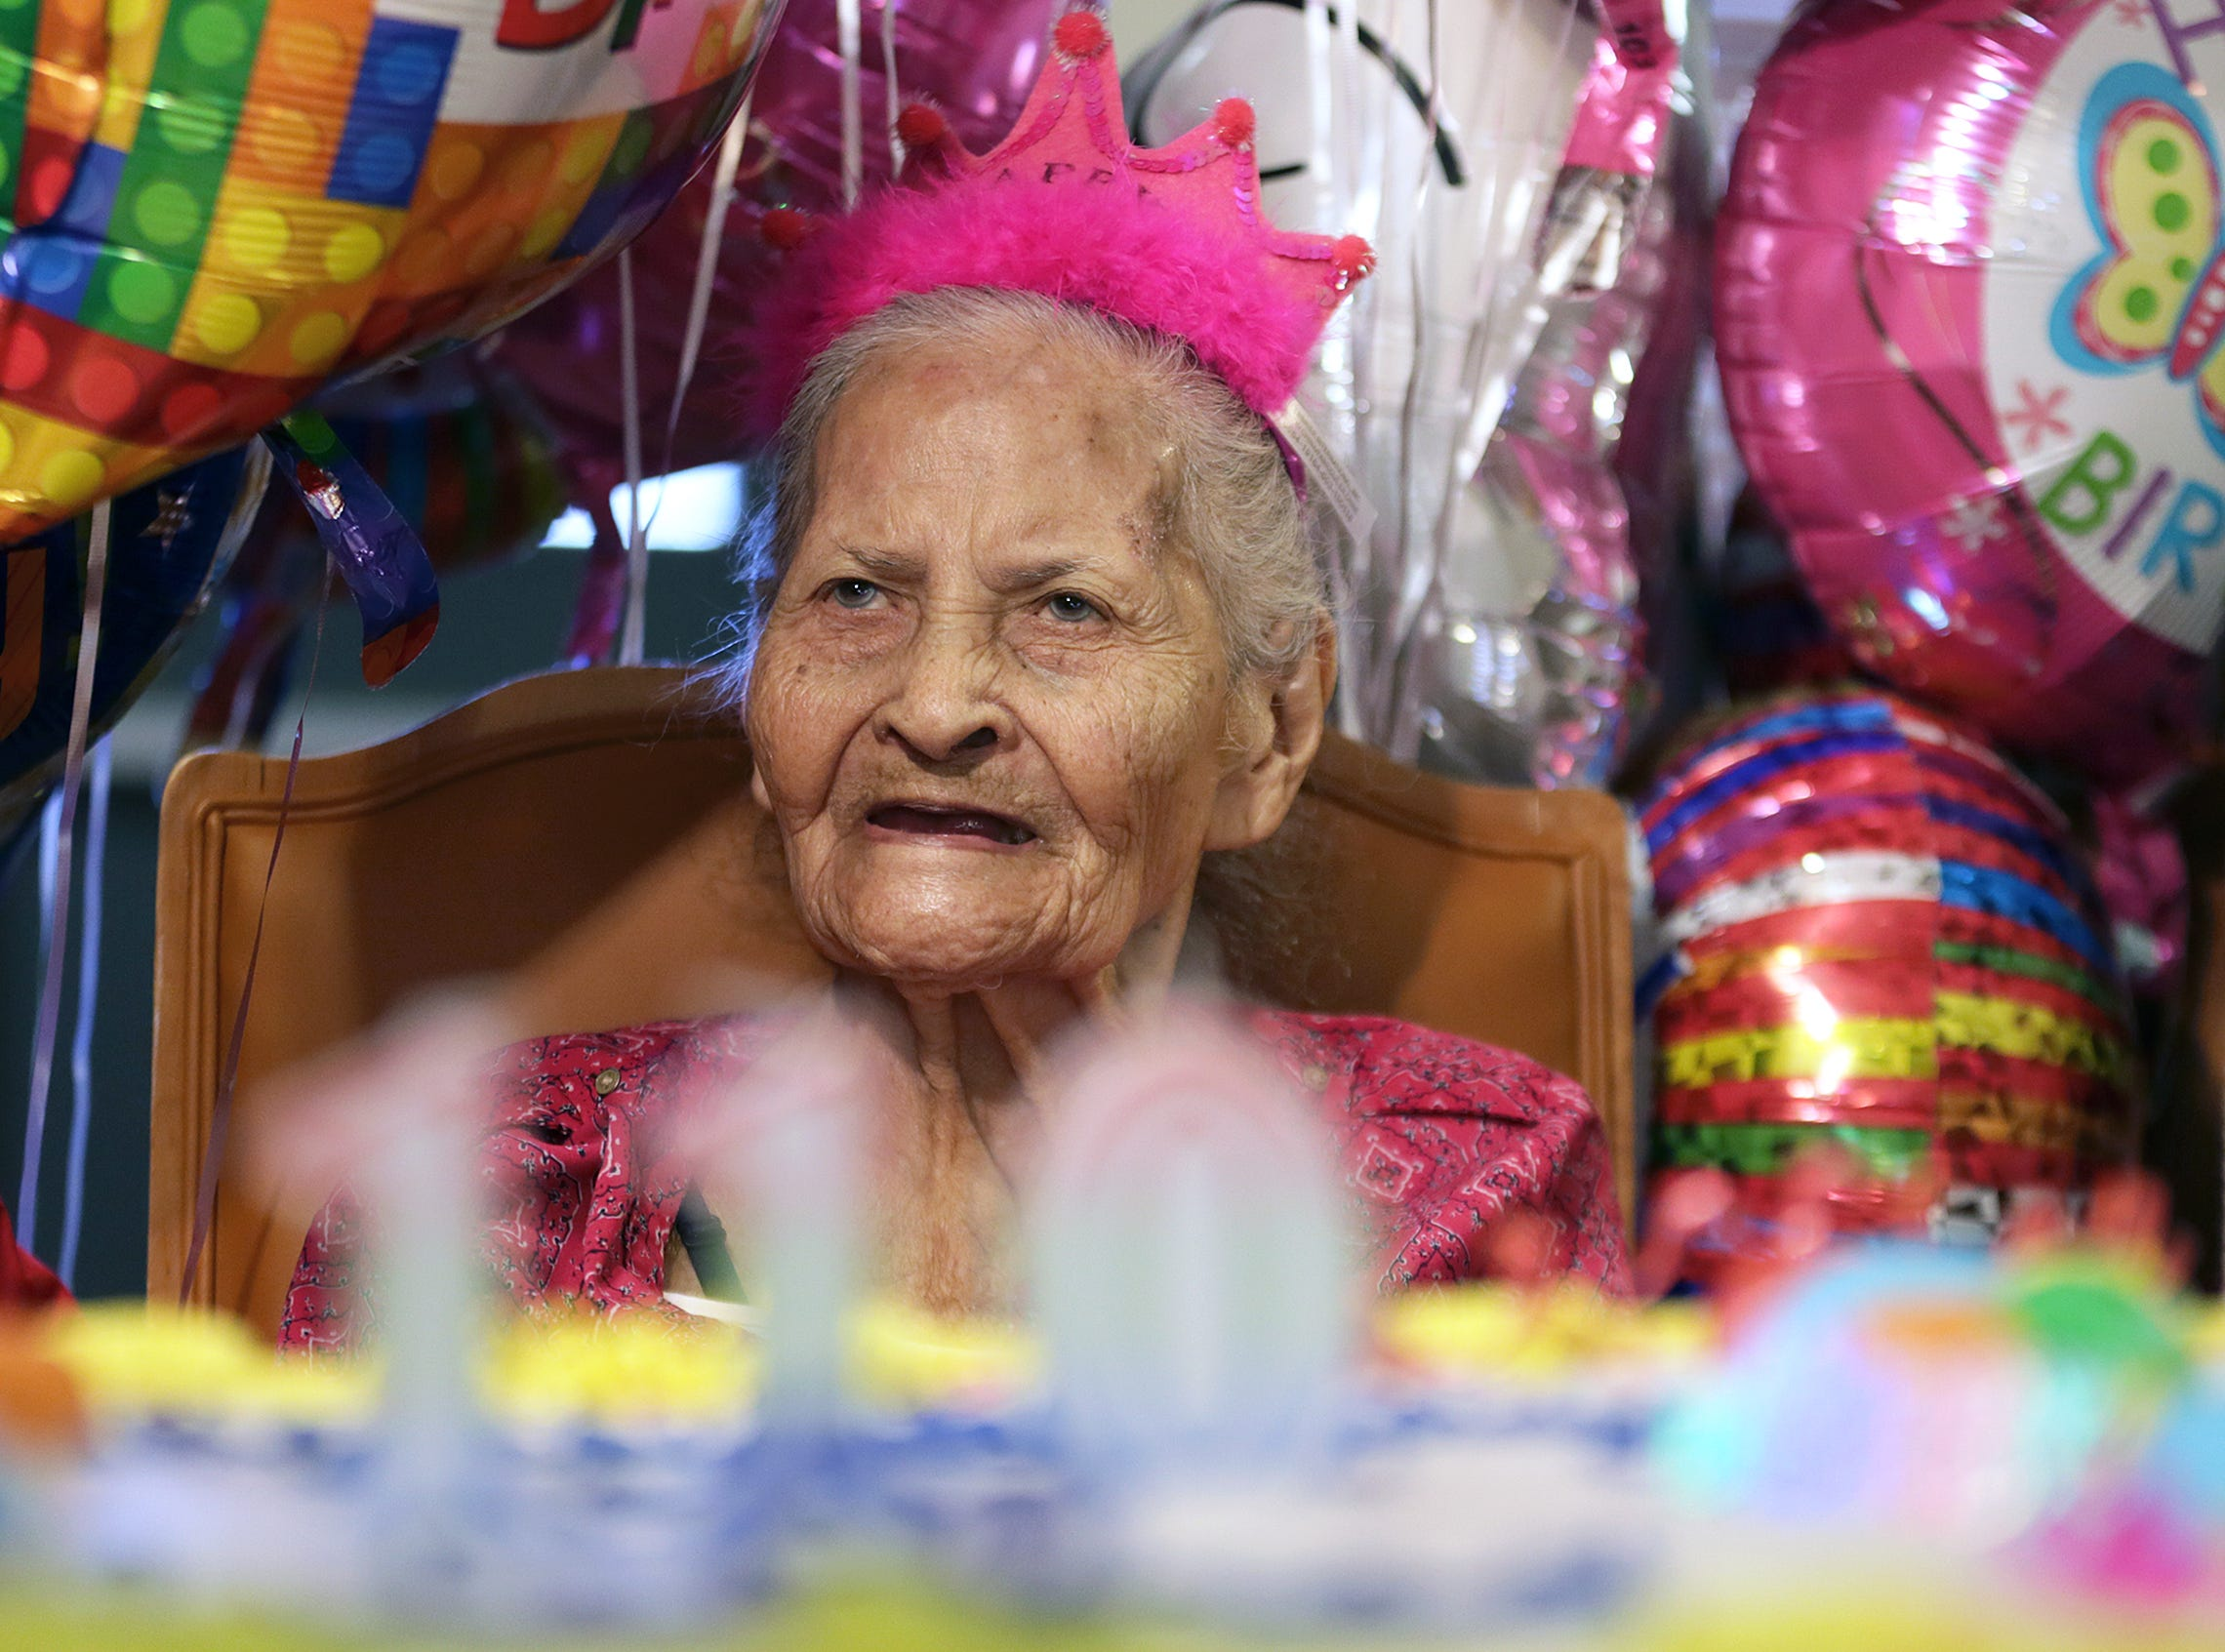 El Pasoan Maria de la Luz Angel Talamantes celebrates her 110th birthday Friday at Oasis Nursing and Rehabilitation Center. The Mexico native was a florist in Mexico before moving to El Paso.